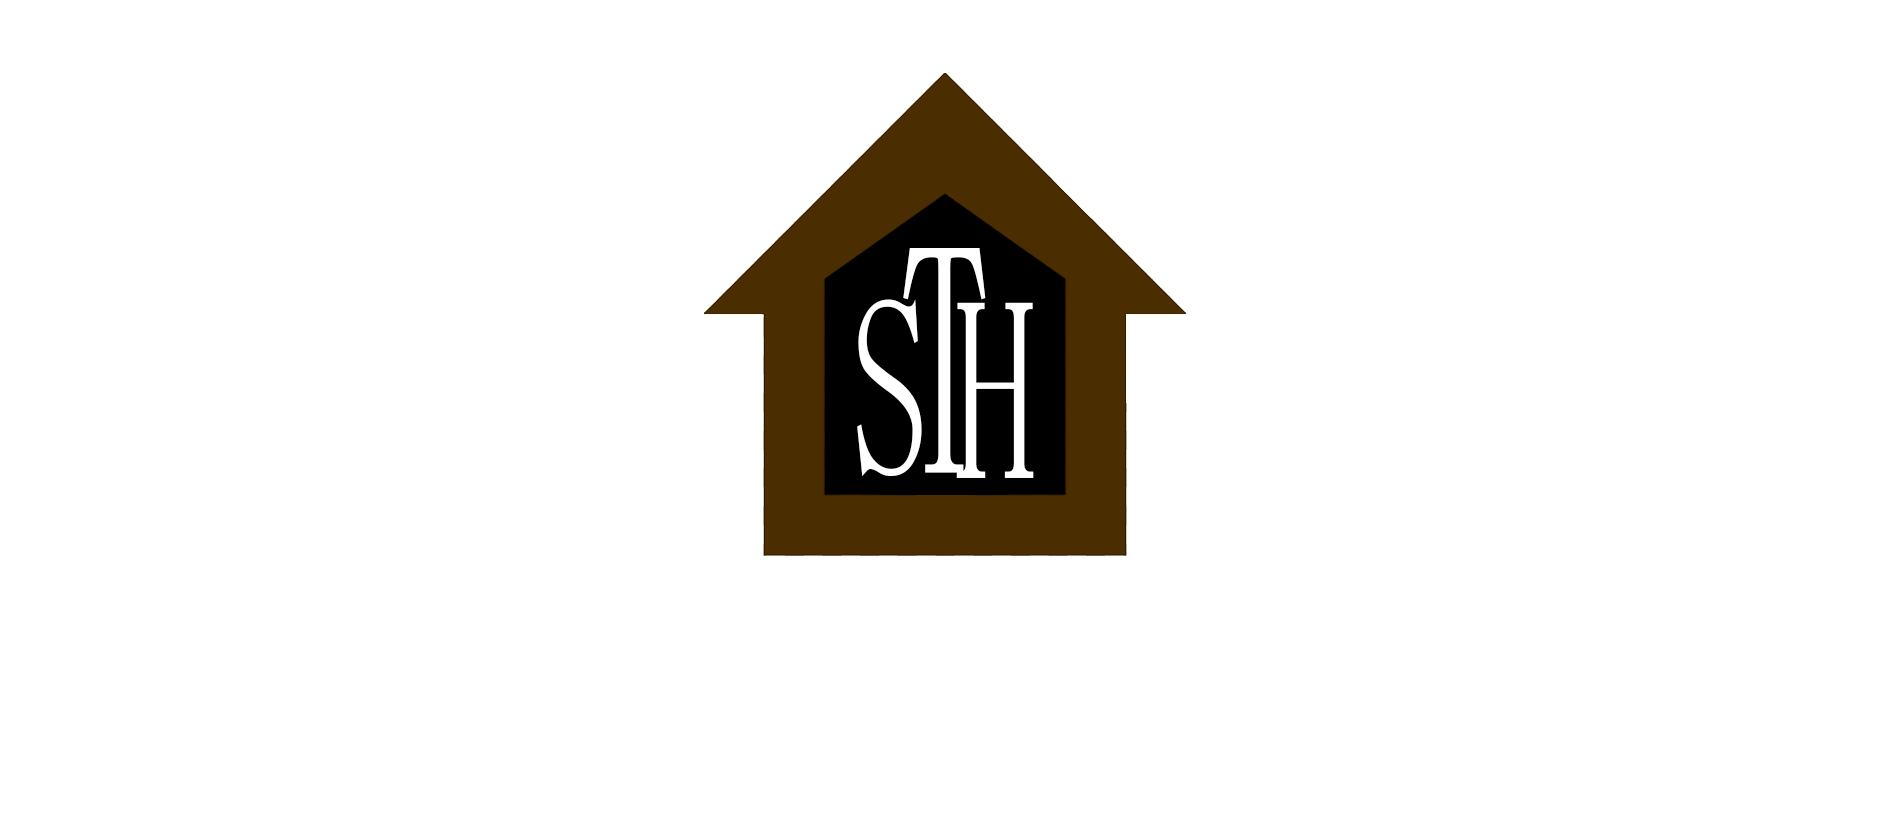 Smart and Tiny House